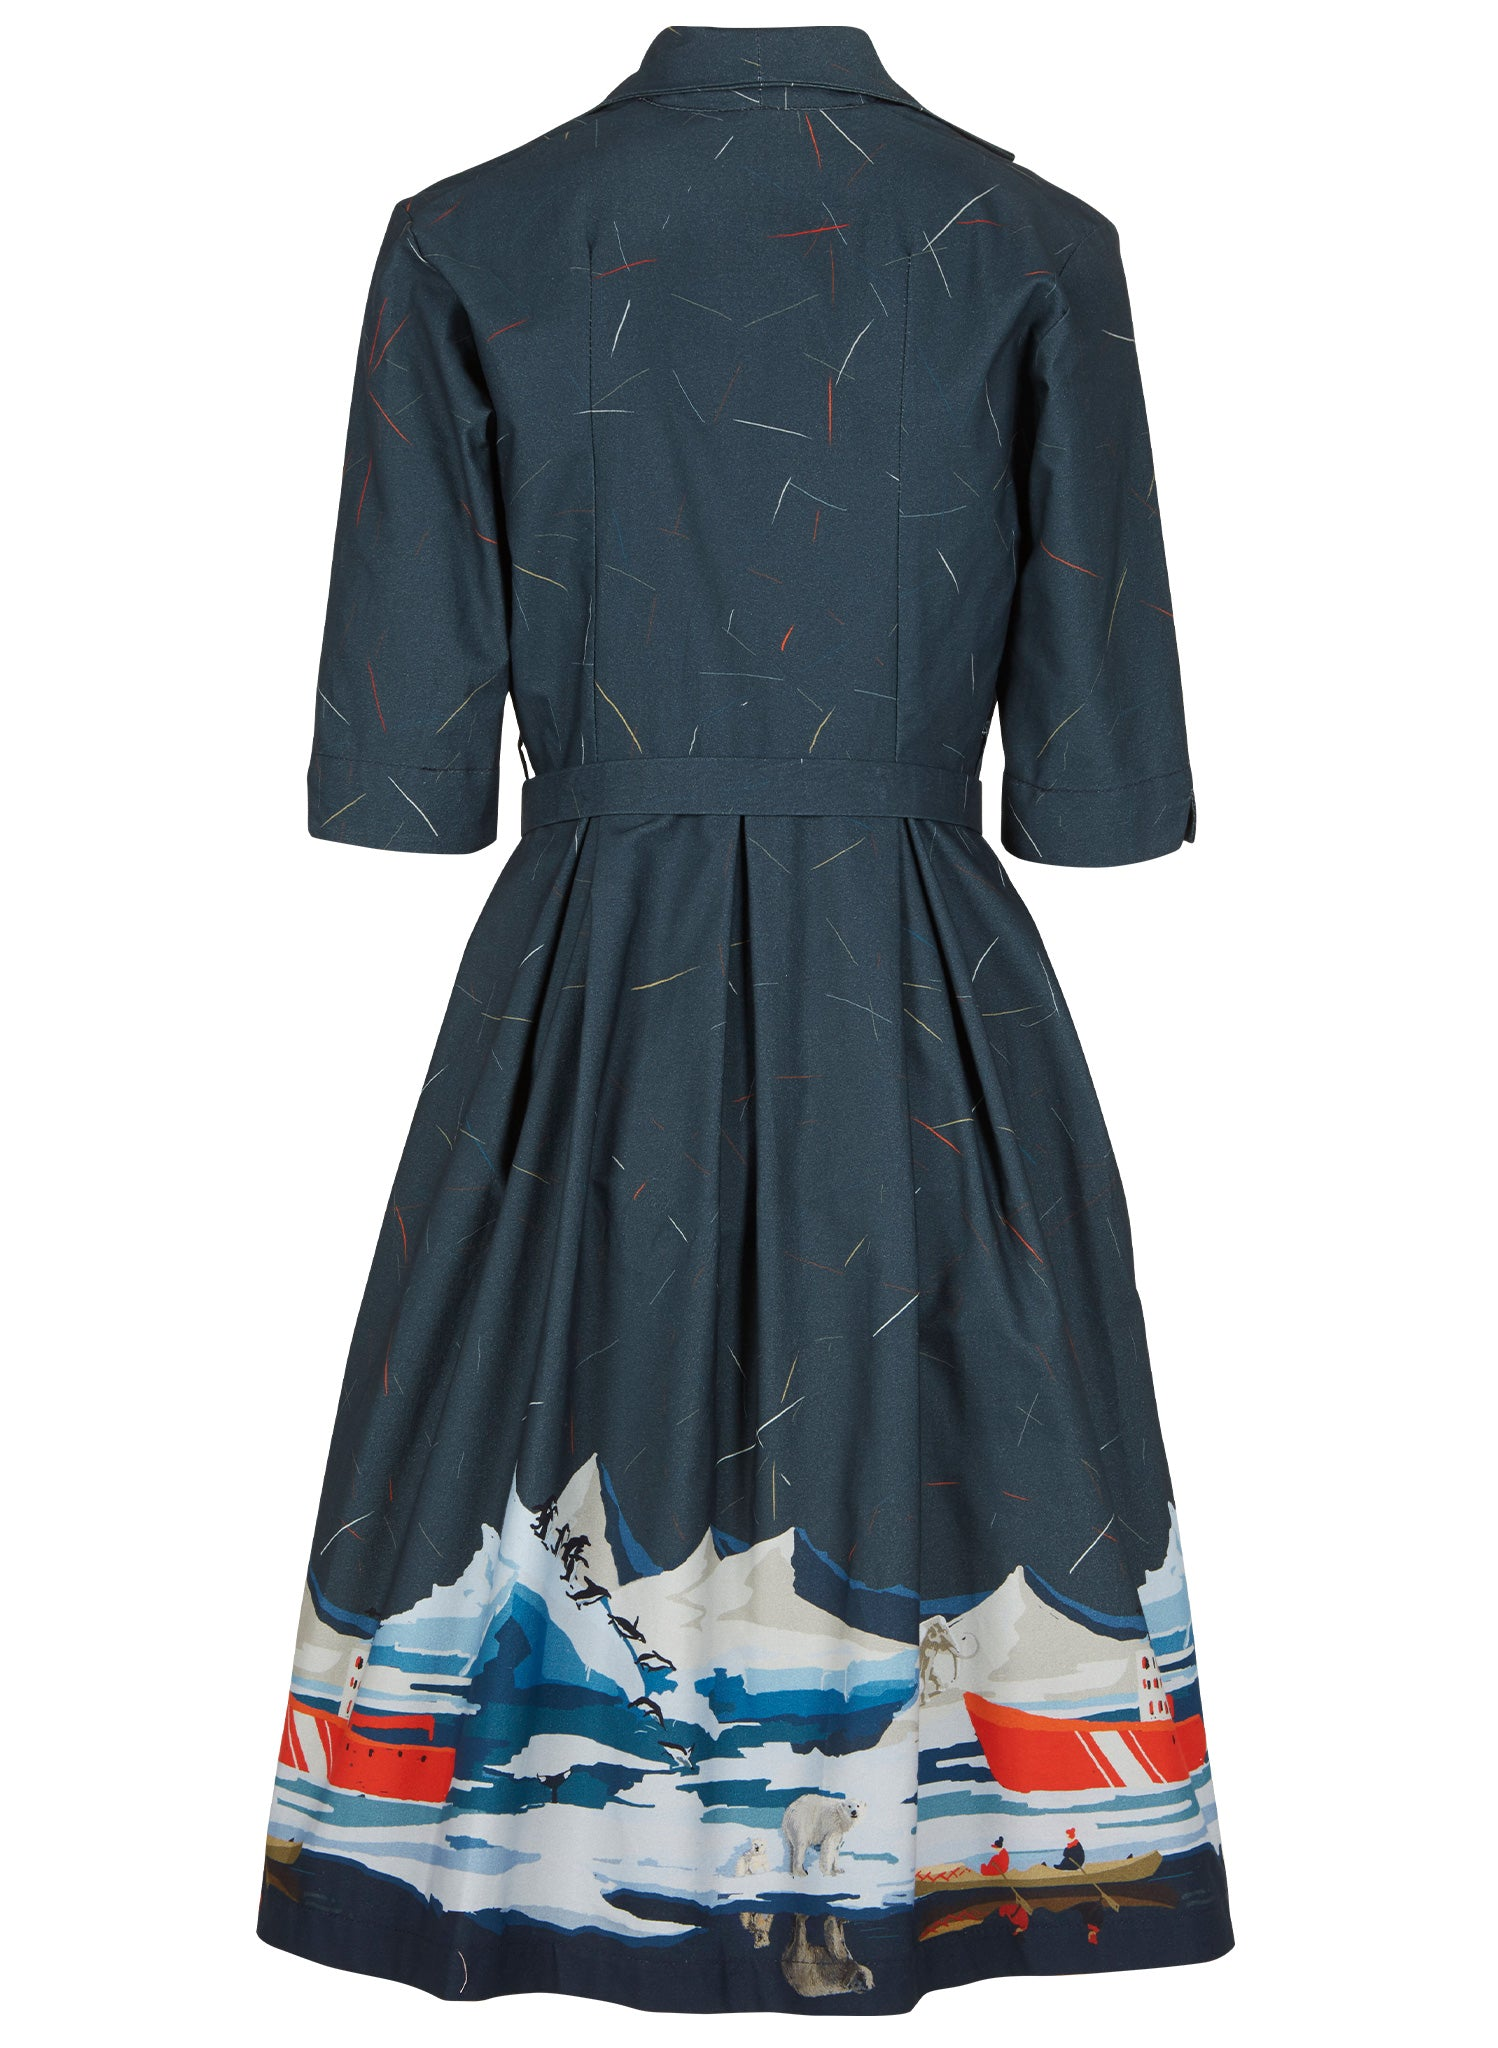 Ida - Steel Blue Arctic Explorer Dress - 100% Organic Cotton